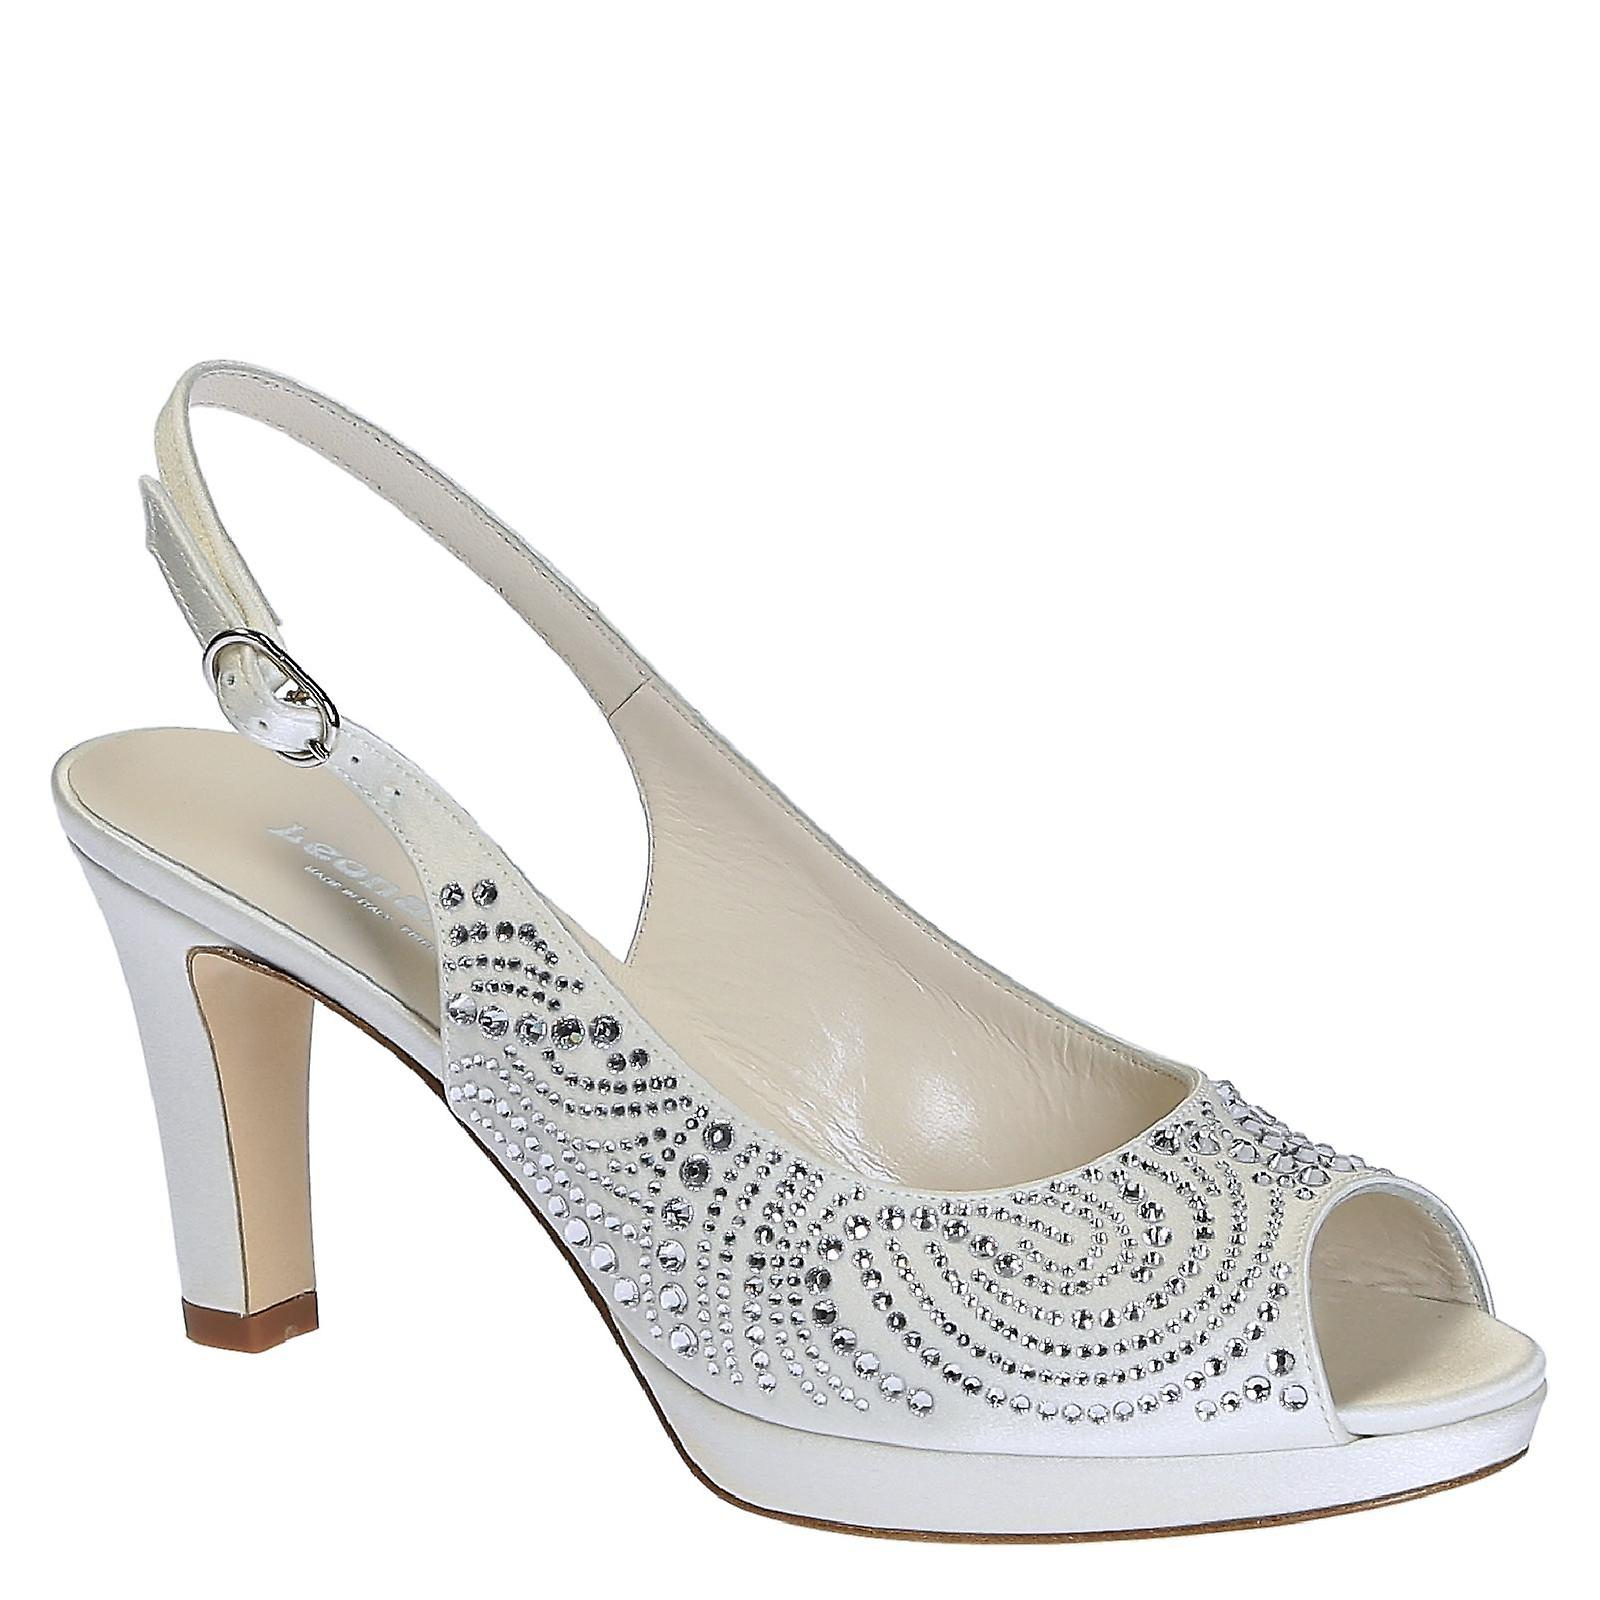 In Leather Heels With Pumps Wedding Slingback White High Open Toe QdCsthr